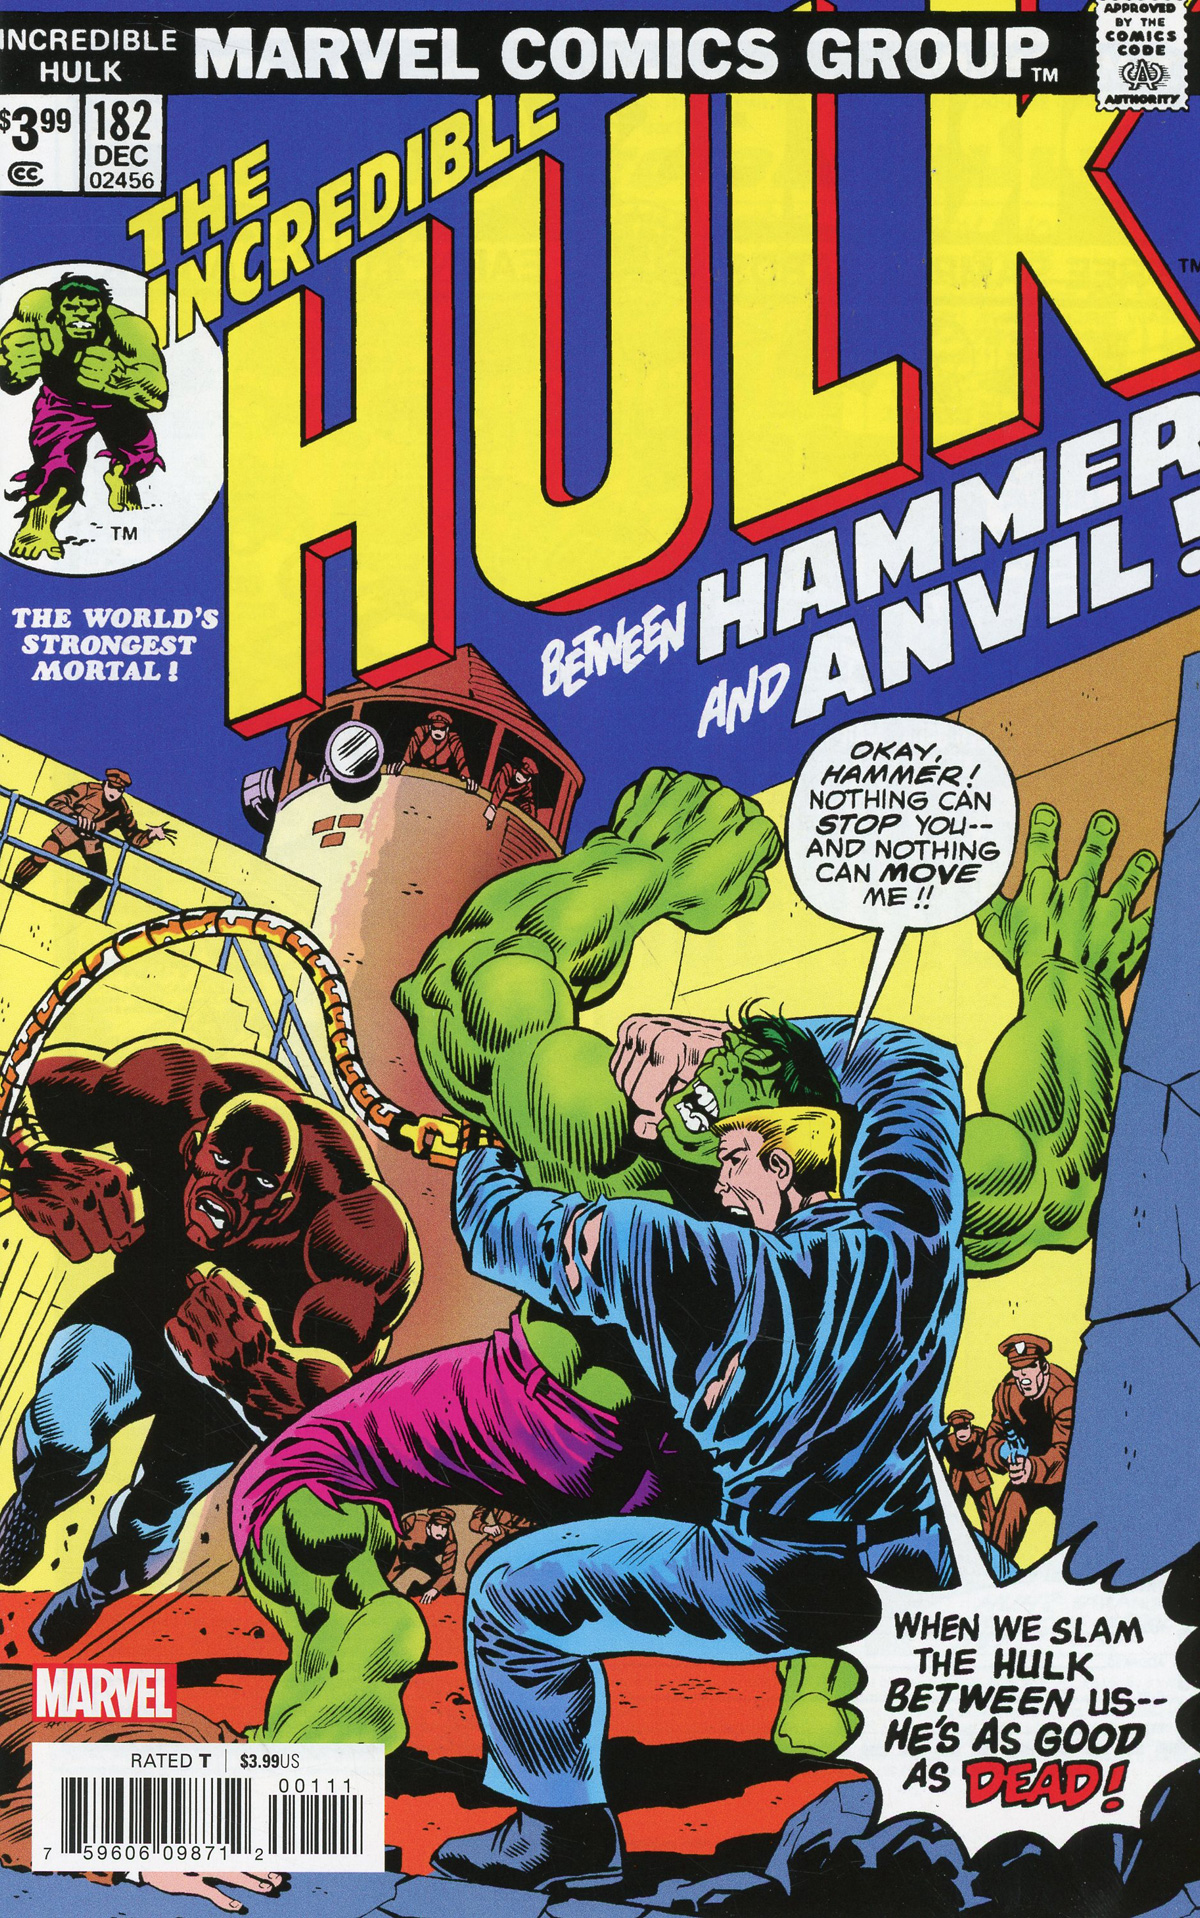 Incredible Hulk #182 Cover B Facsimile Edition